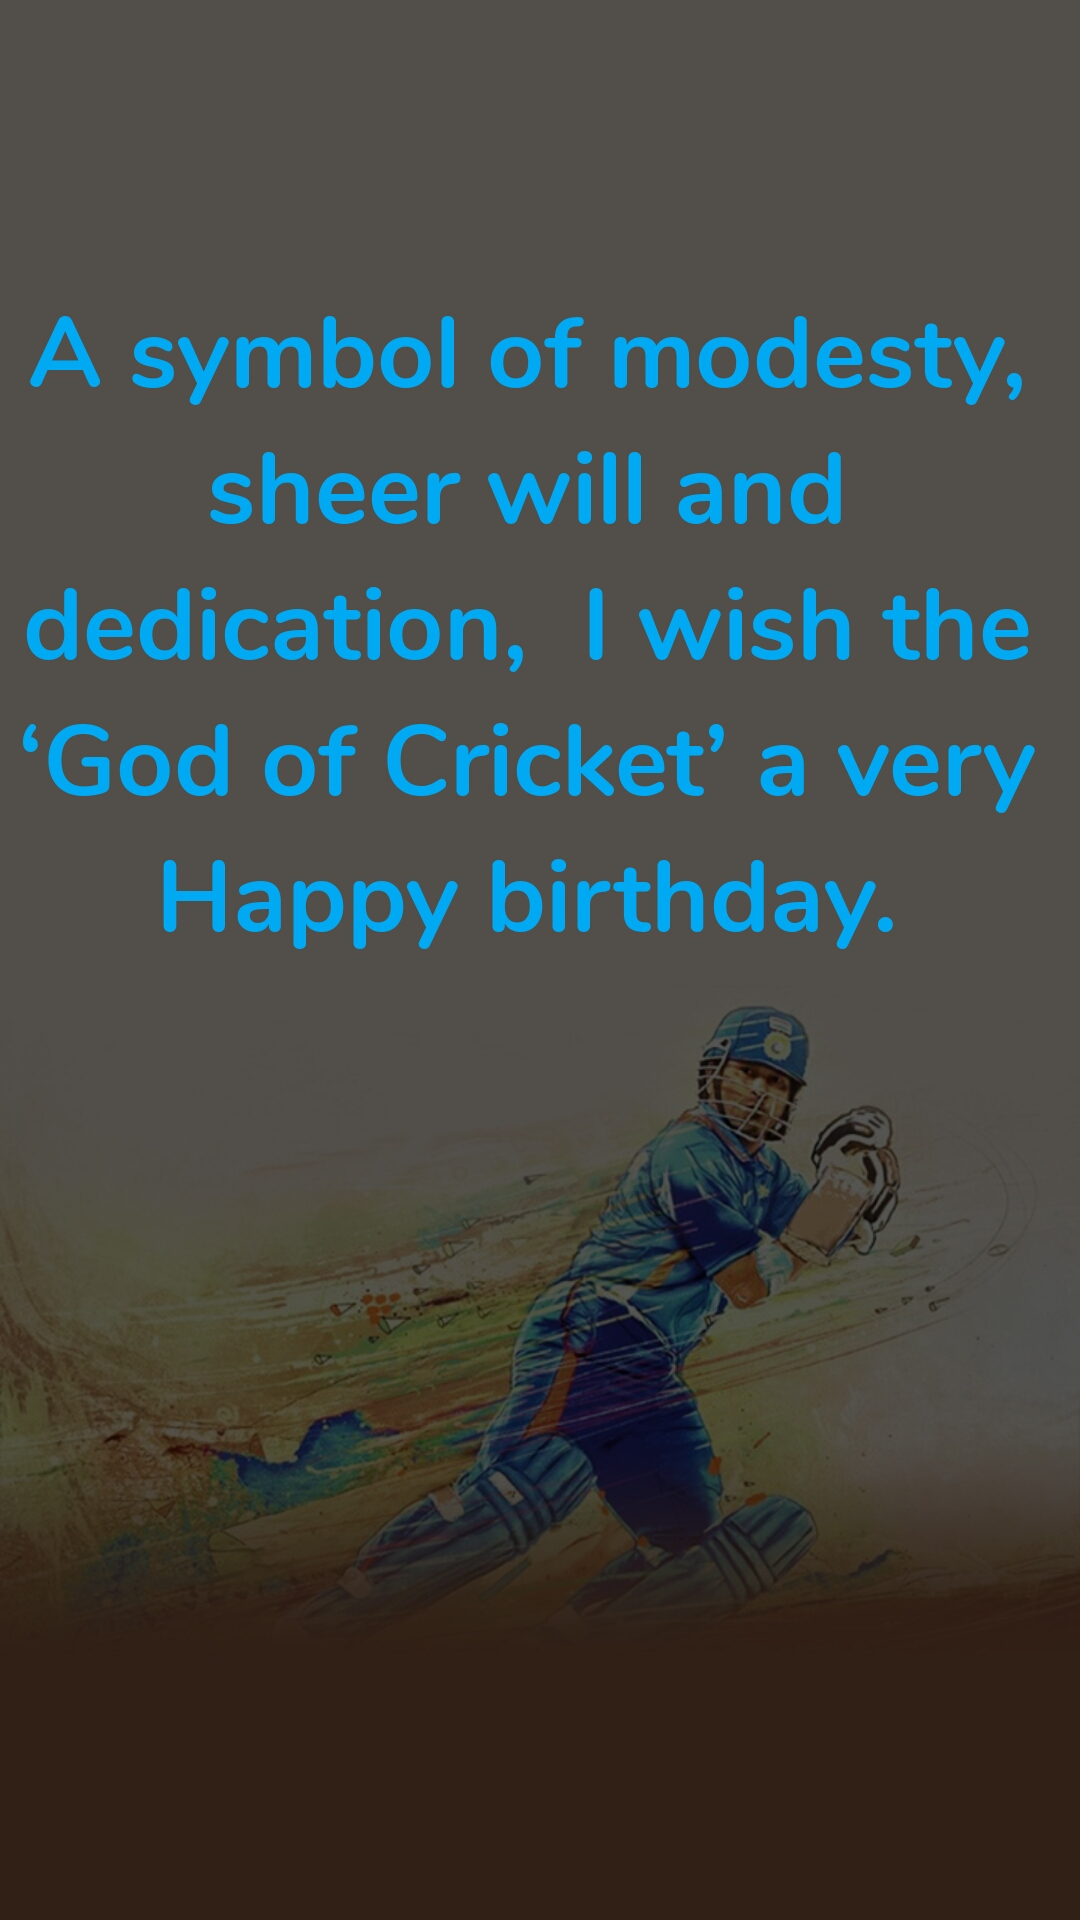 A symbol of modesty, sheer will and dedication,  I wish the 'God of Cricket' a very Happy birthday.